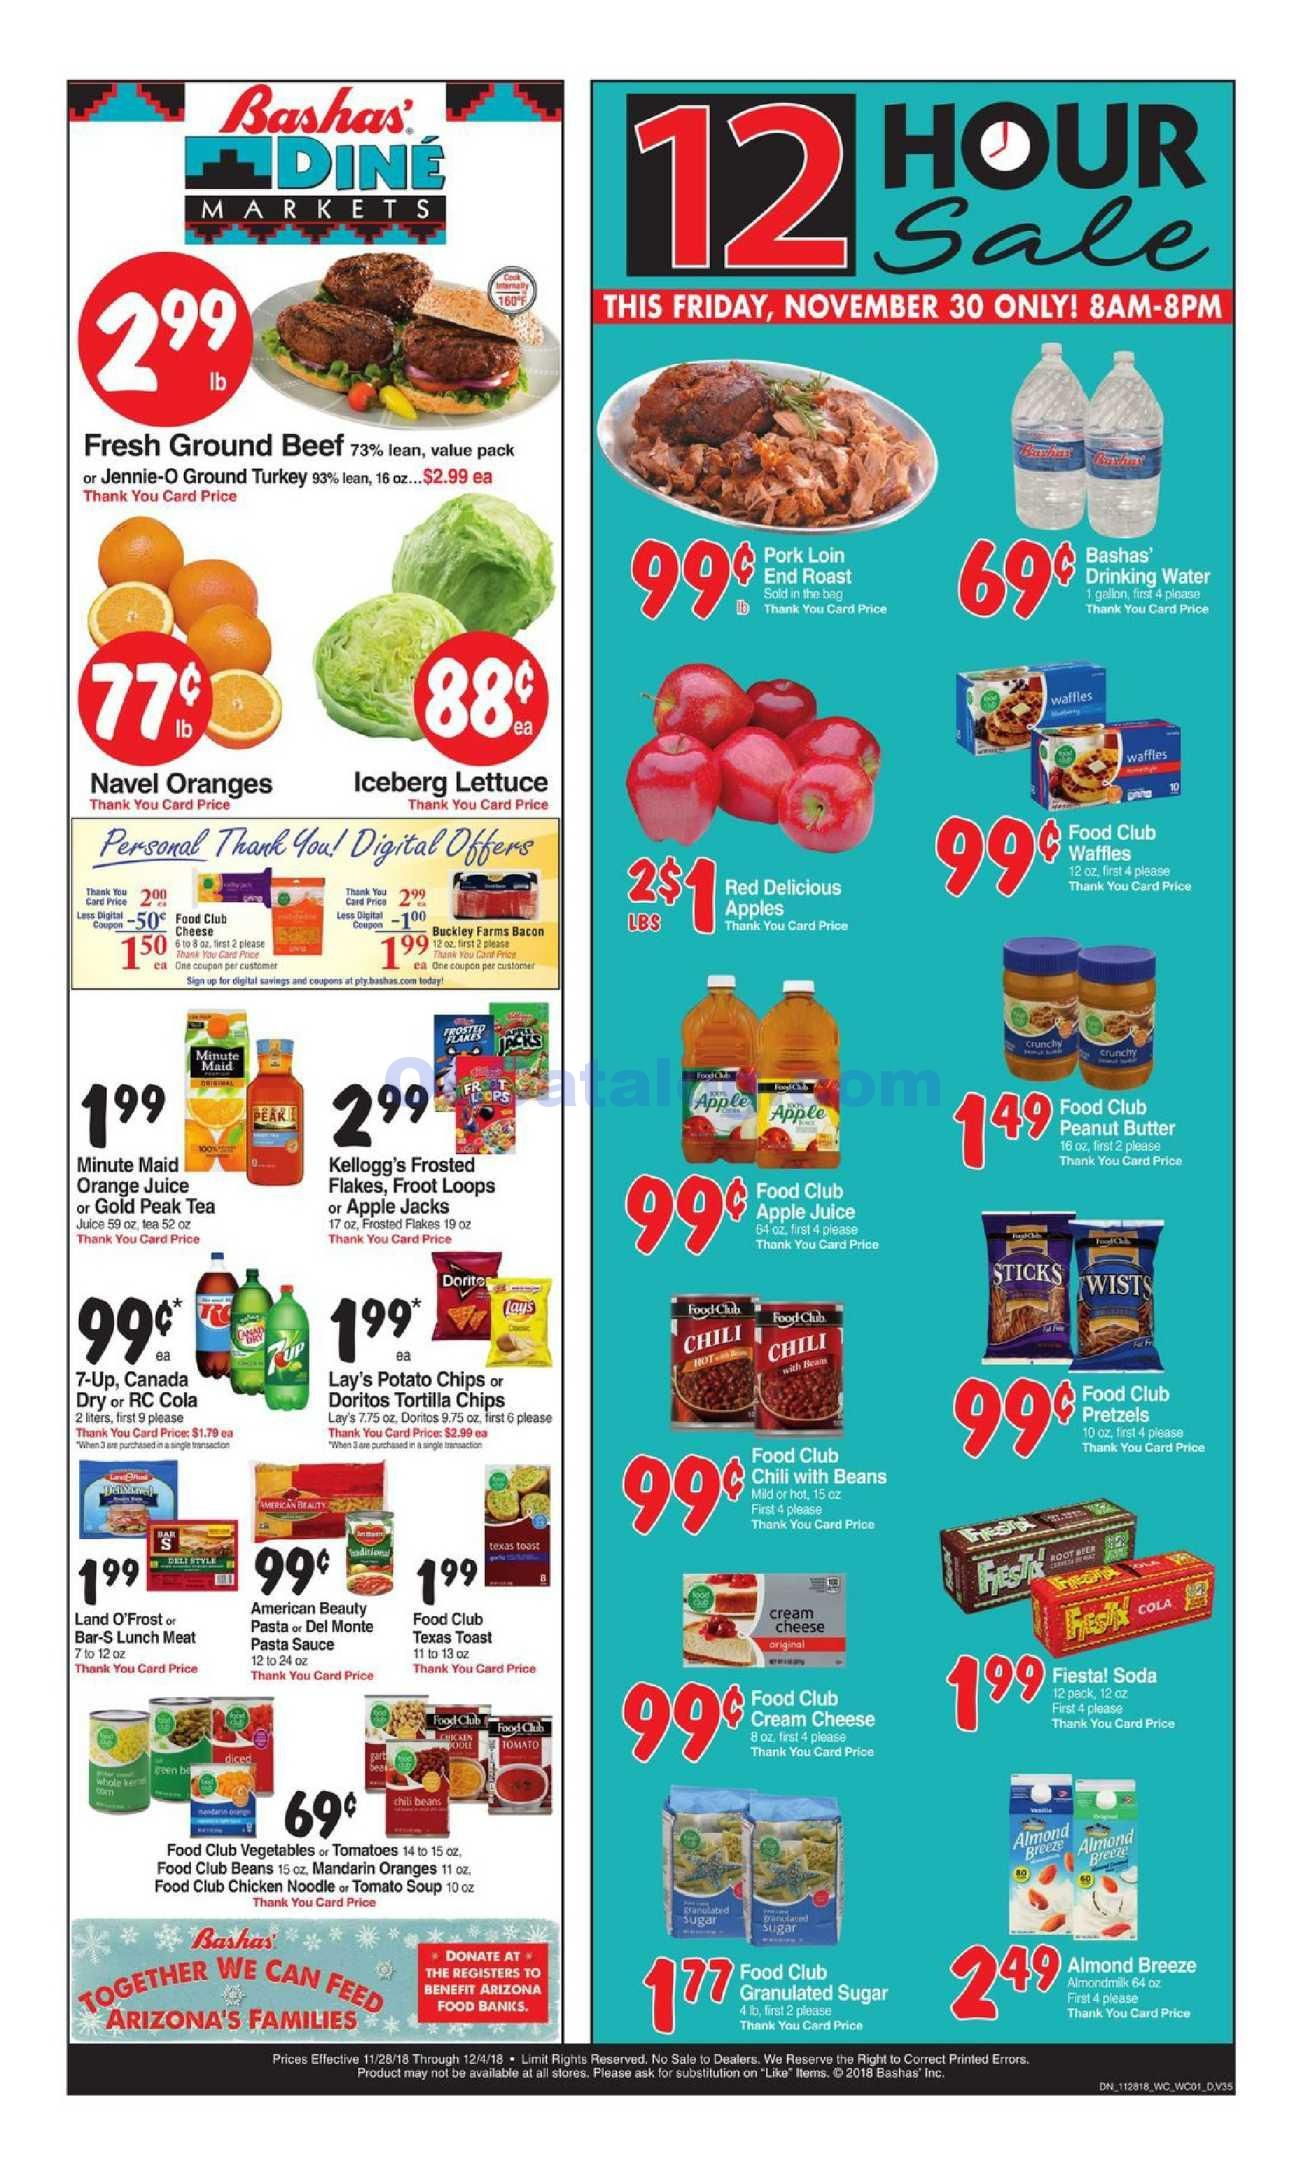 Bashas Weekly Ad November 28 December 4 2018 Do You Know